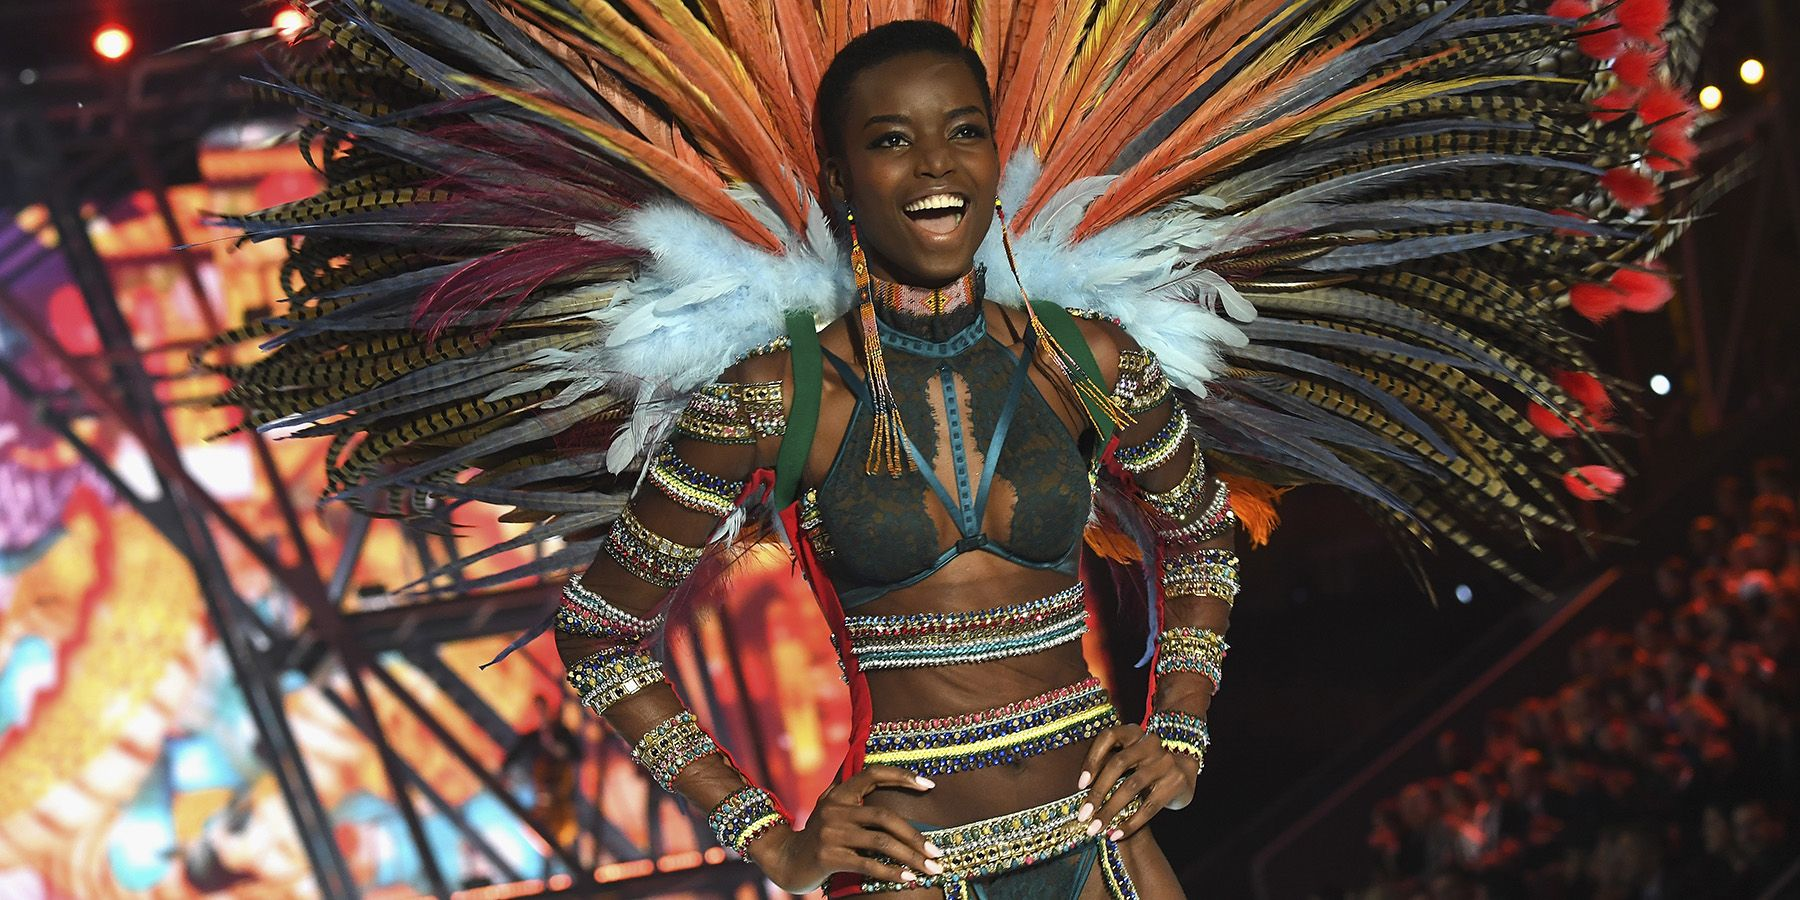 A Complete History of the Victoria's Secret Fashion Show